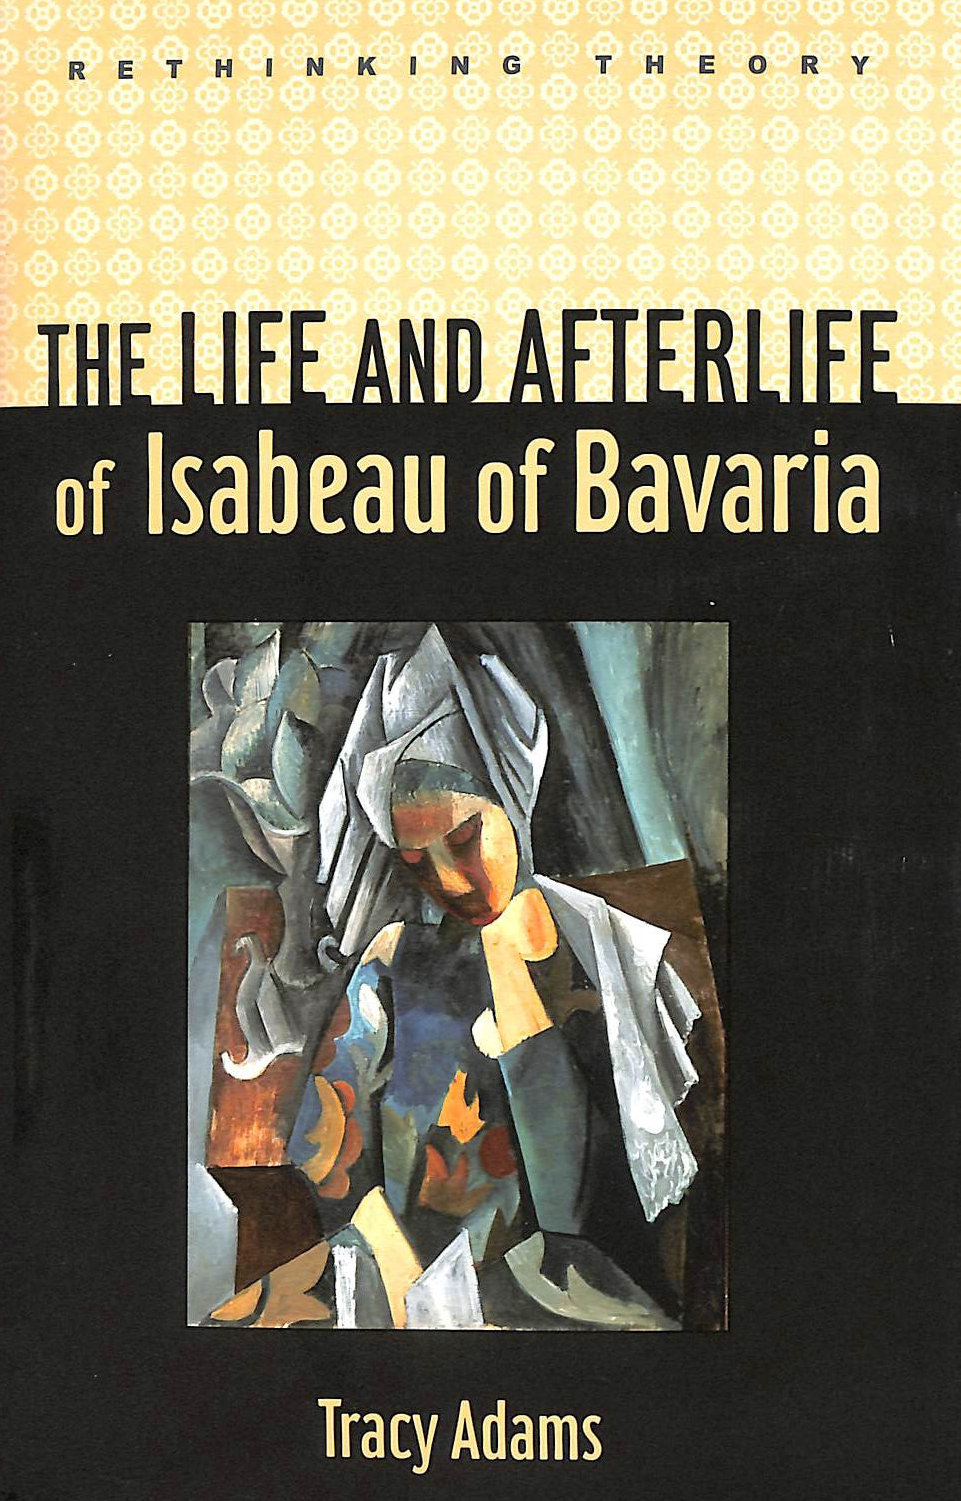 Image for The Life and Afterlife of Isabeau of Bavaria (Rethinking Theory)